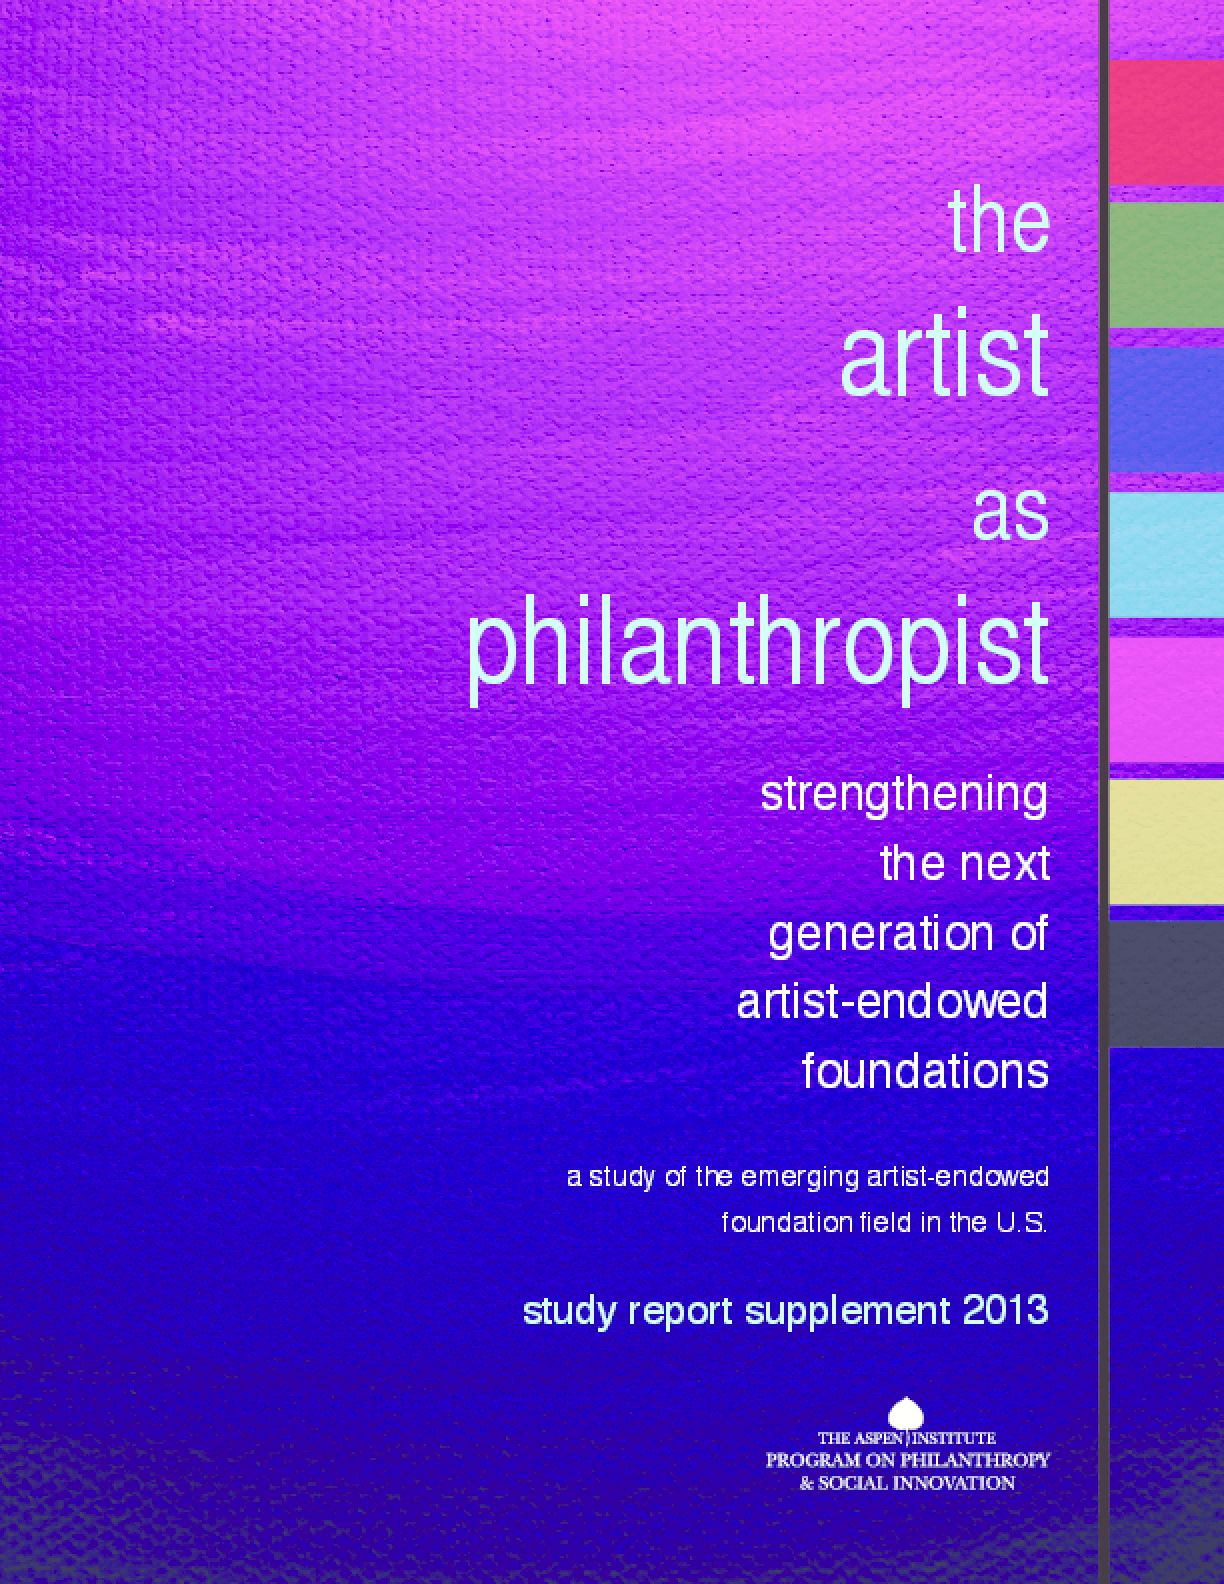 The Artist as Philanthropist: Strengthening the Next Generation of Artist-Endowed Foundations, Study Report Supplement 2013